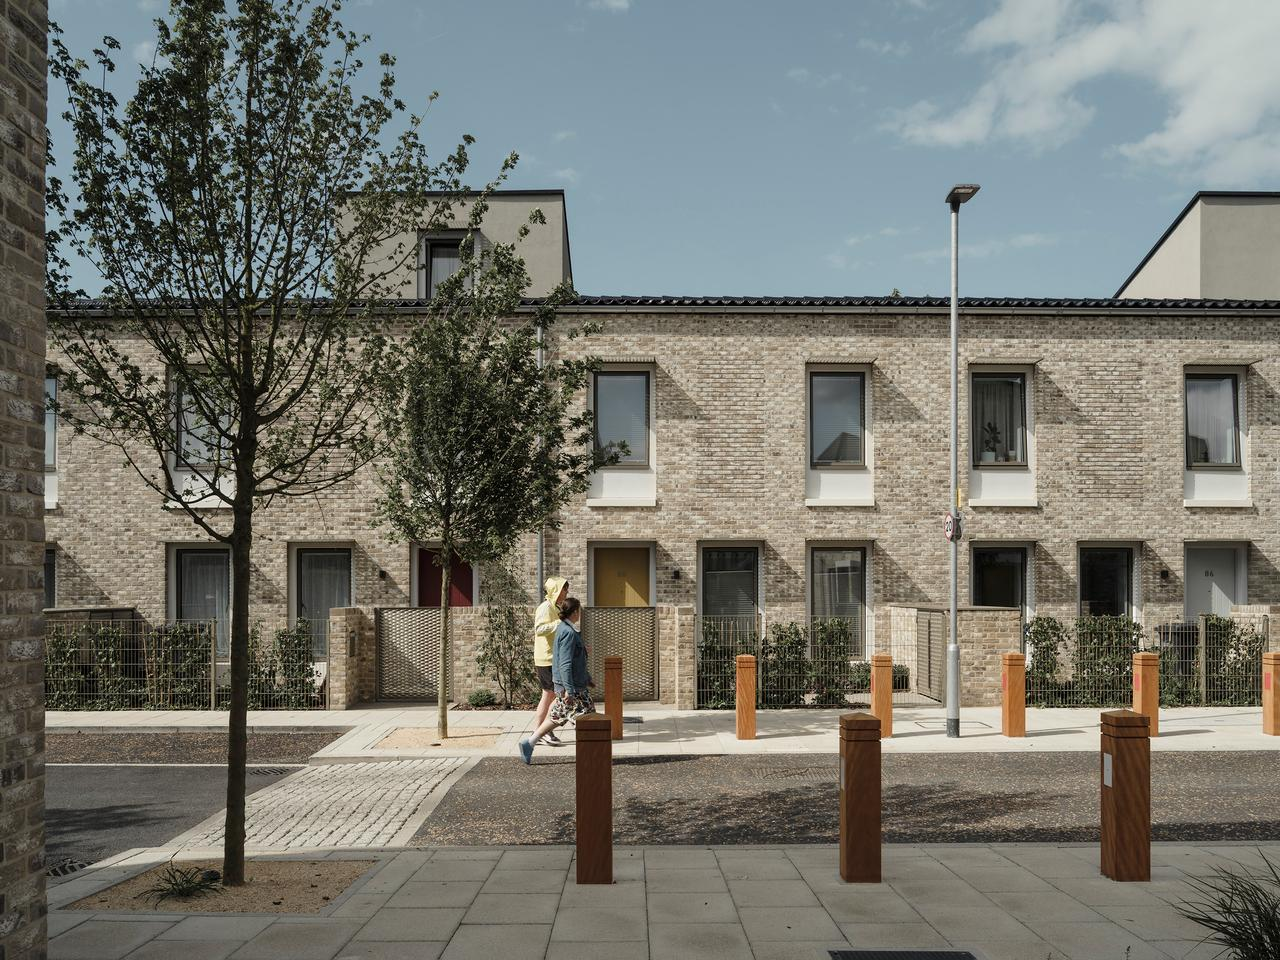 Goldsmith Street, by Mikhail Riches with Cathy Hawley, is one of the 74 projects featured in the 2020 Beazley Designs of the Year shortlist